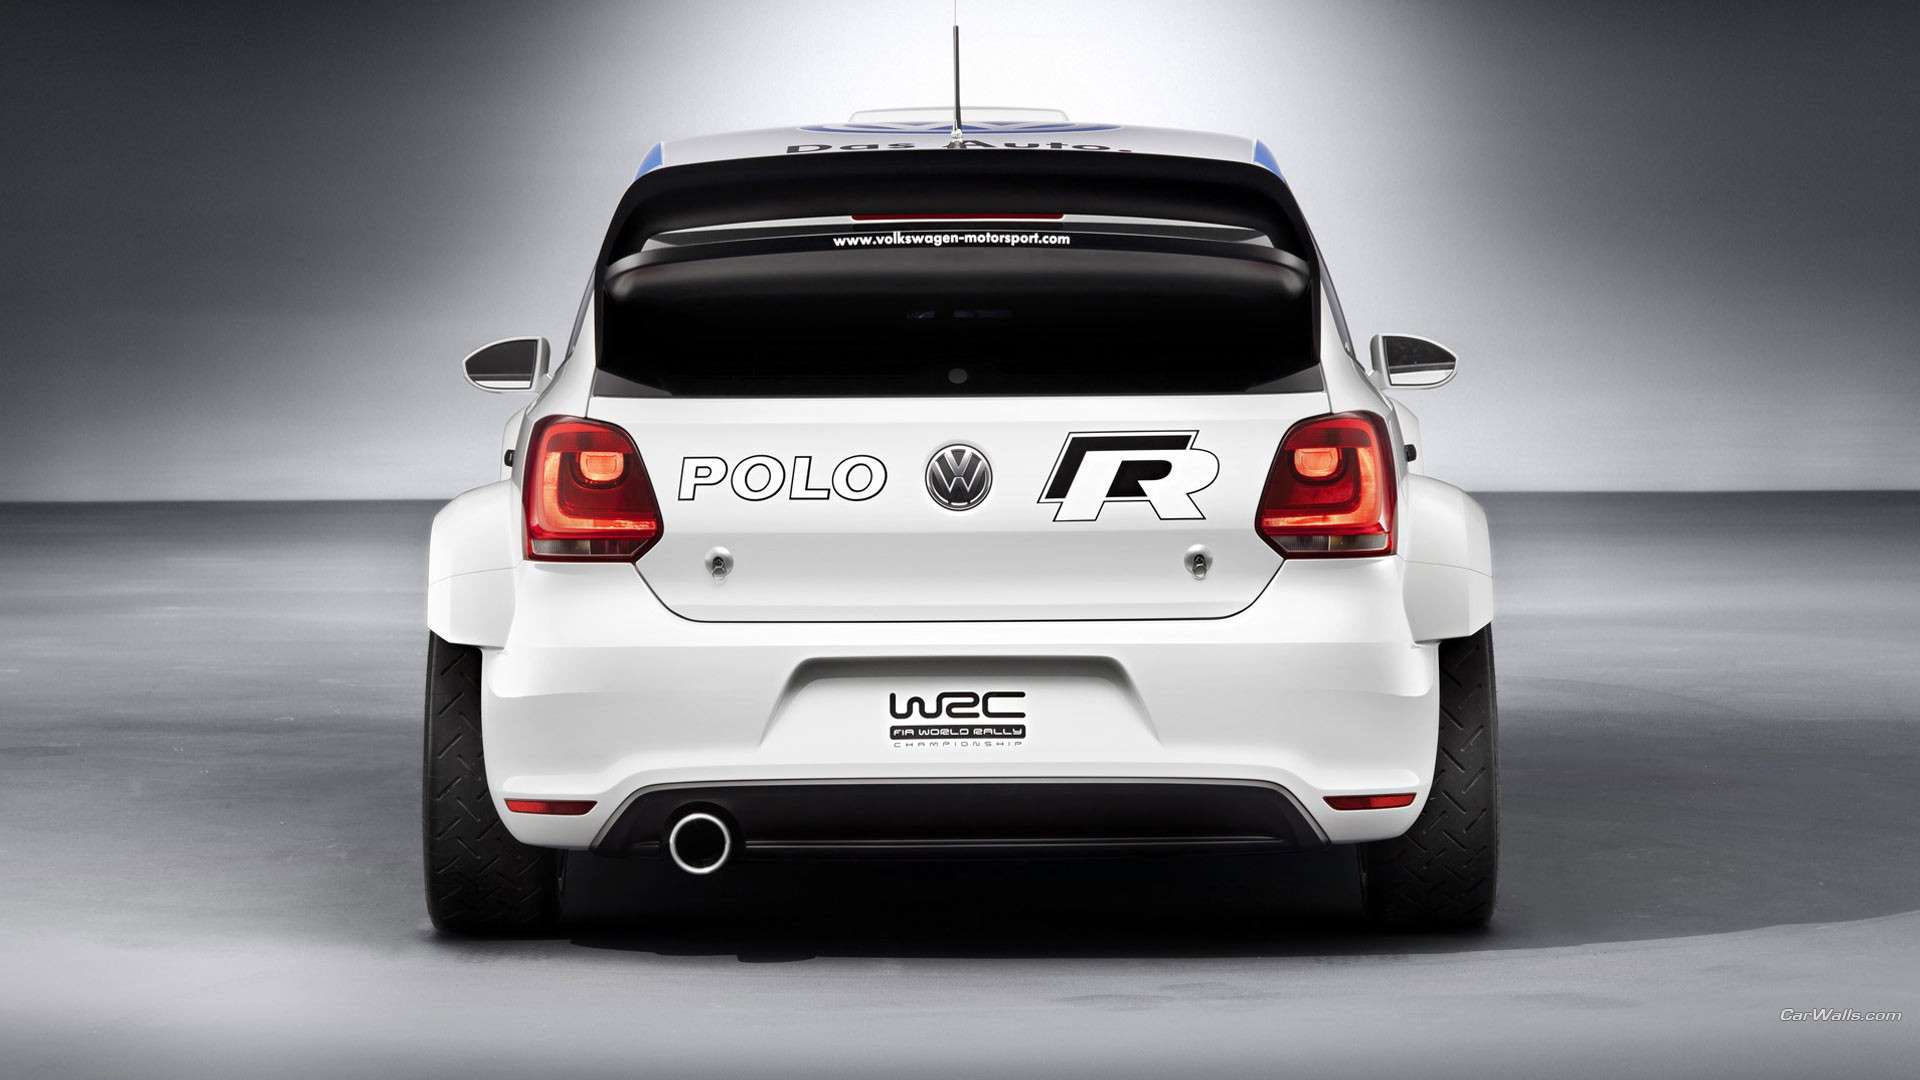 Crazy 3d Wallpapers Hd Car Volkswagen Vw Polo Wrc Rally Cars Wallpapers Hd